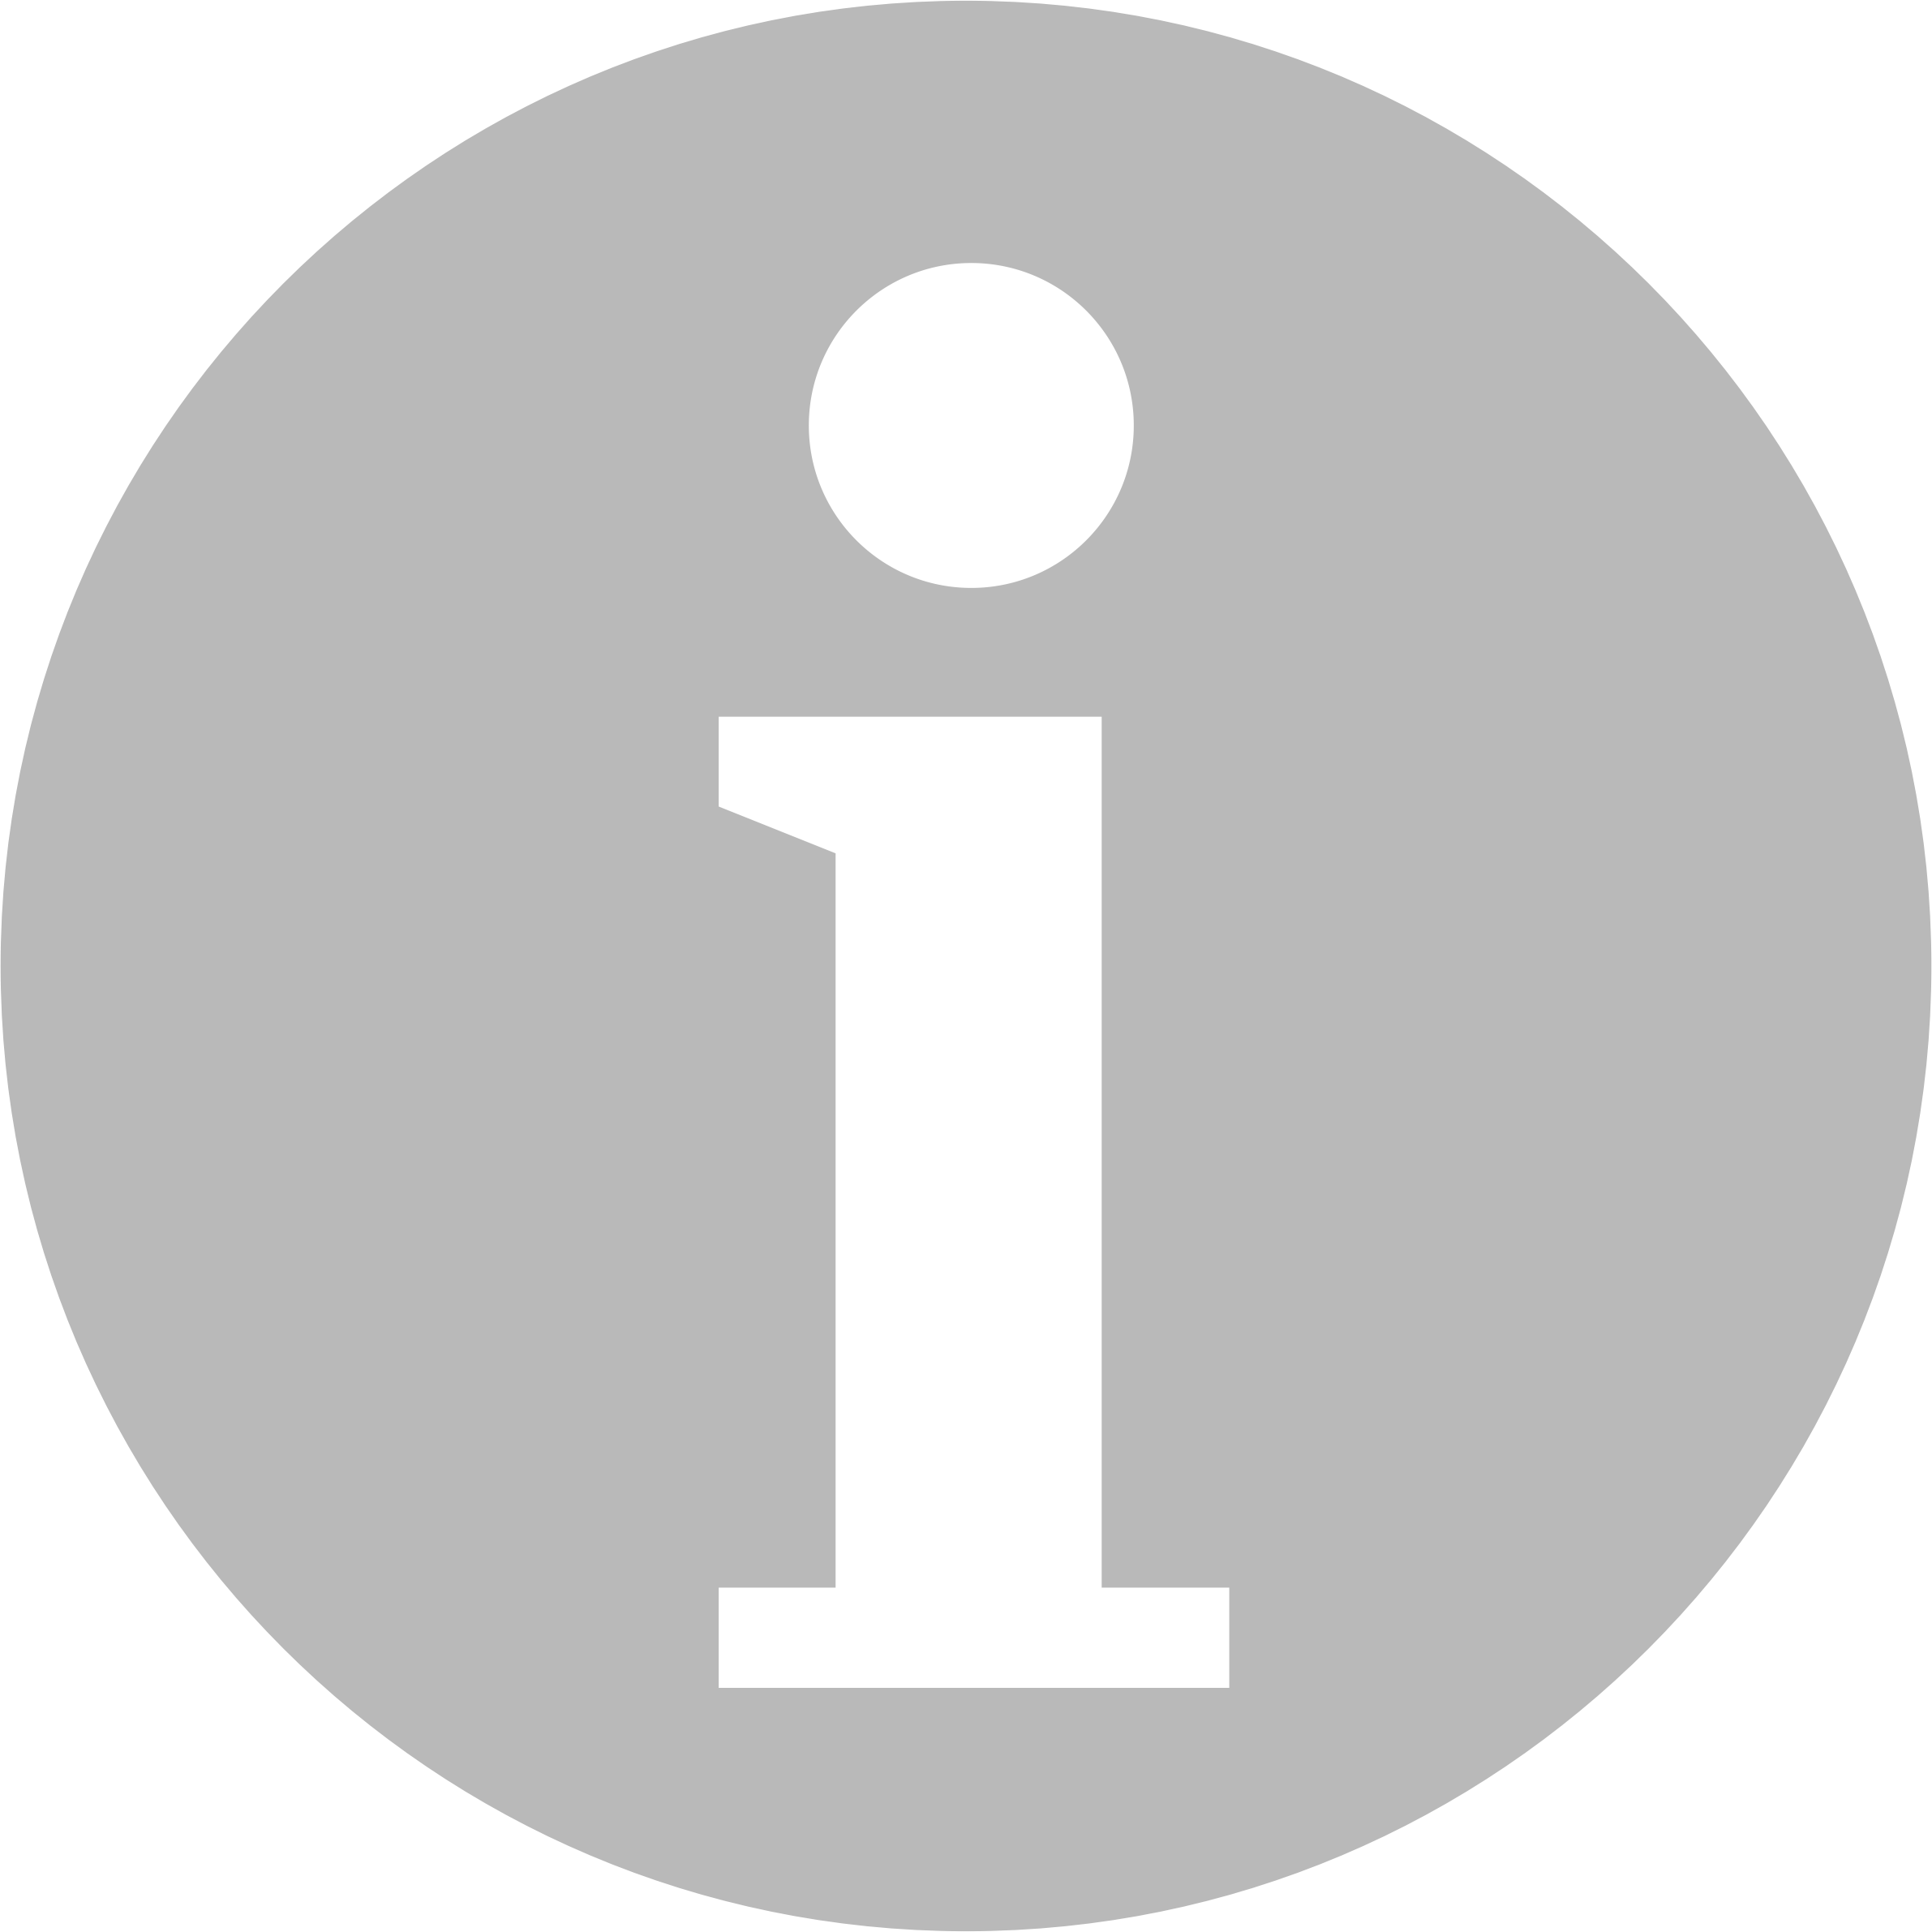 Info Button by tobiasluko